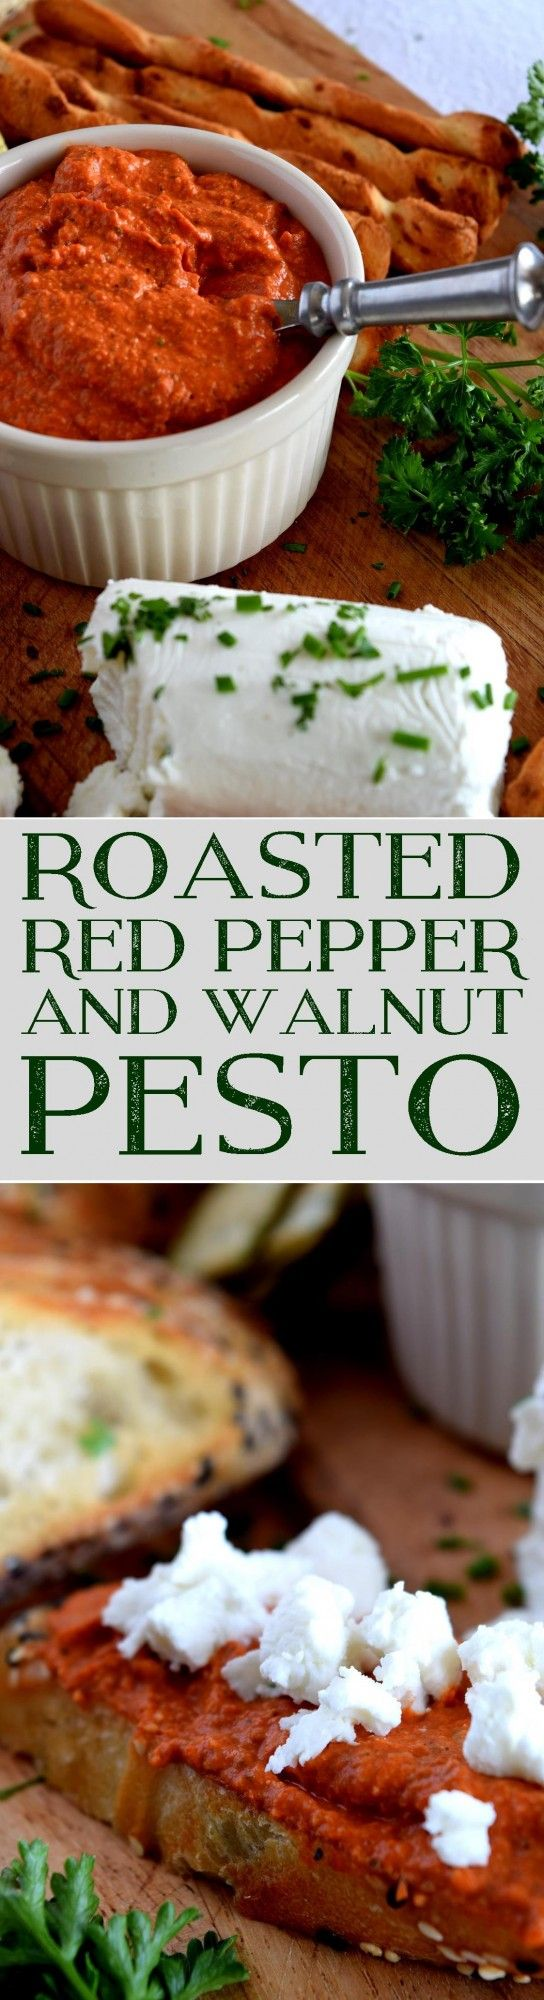 Early summer screams for Roasted Red Pepper Walnut Pesto; a versatile sauce that's everyone's favourite, and can easily help to use up all the bounty ofred peppers. Tasty, easy, affordable, and homemade – could it get any better than that!?…